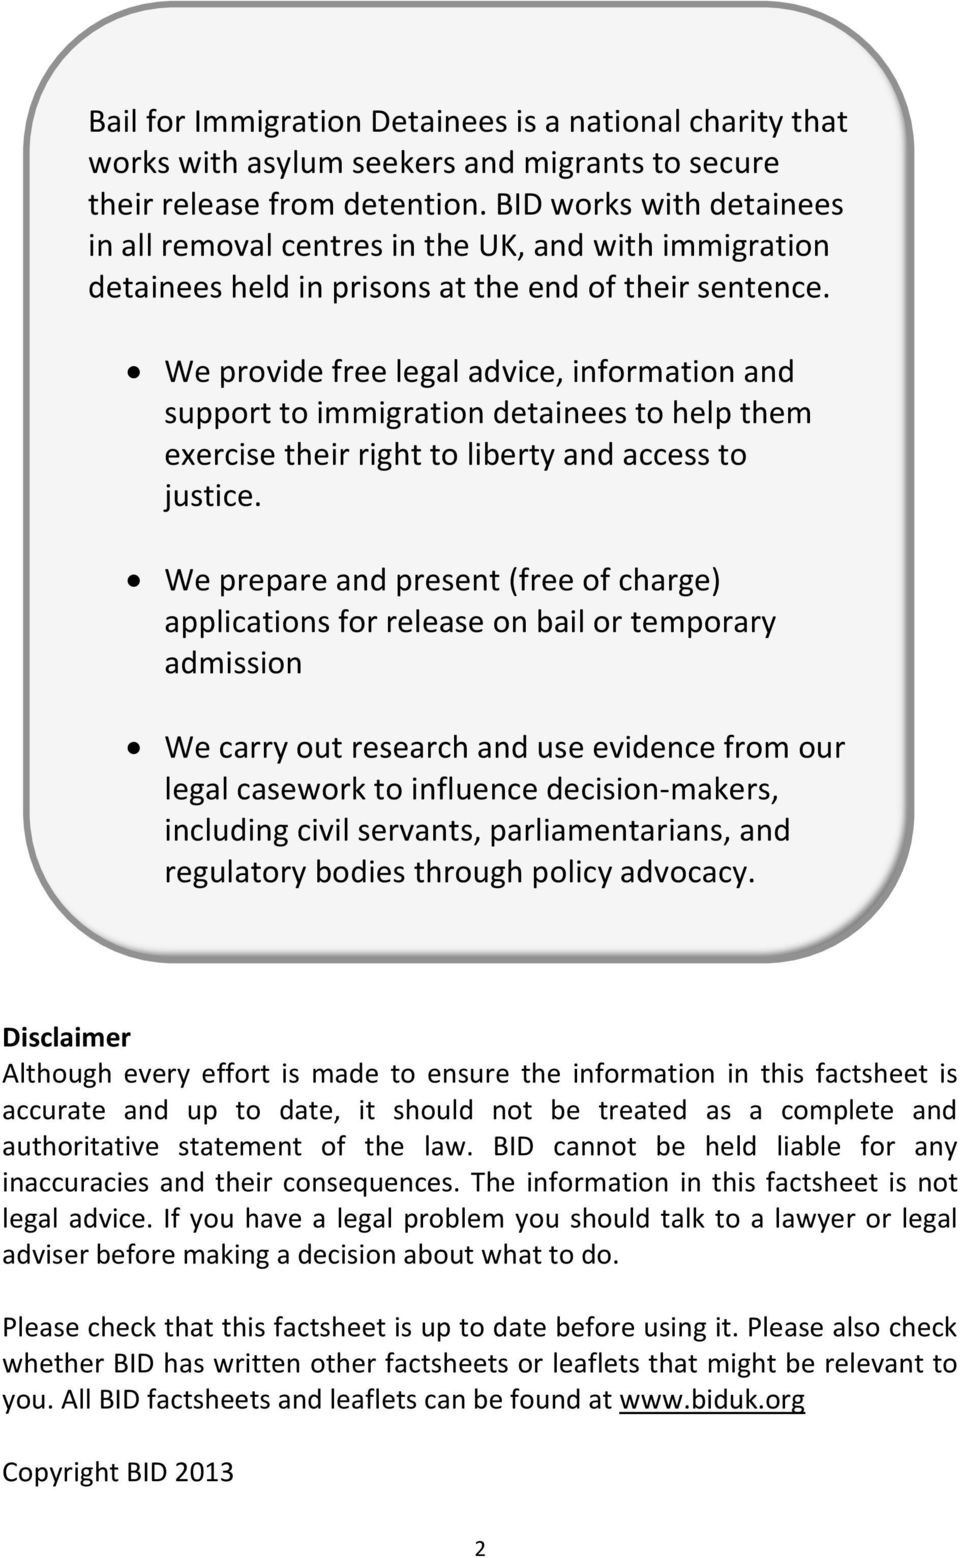 We provide free legal advice, information and support to immigration detainees to help them exercise their right to liberty and access to justice.